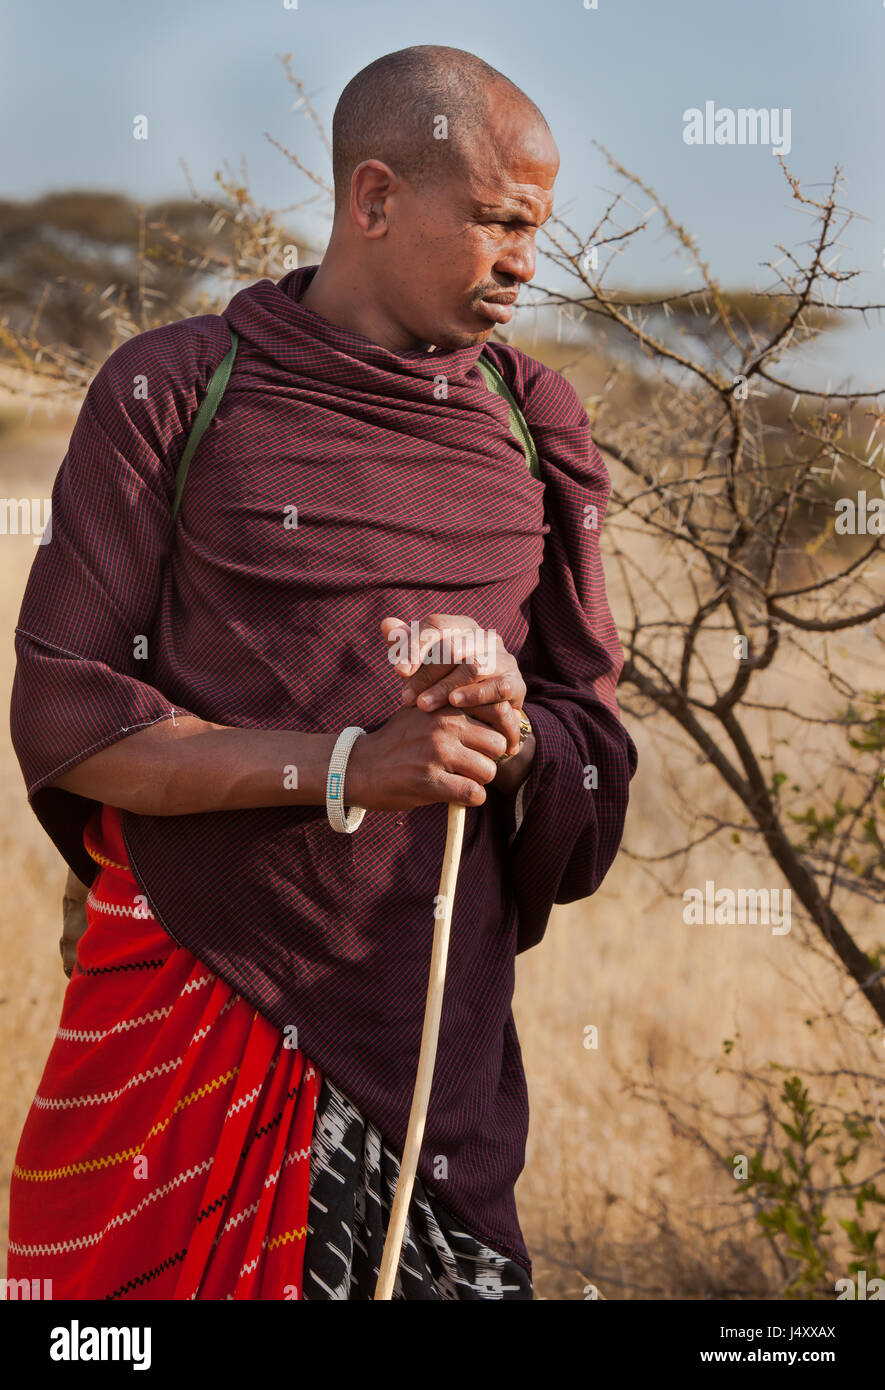 Massai Man in traditional clothing in Kilimajaro, Tanzania - Stock Image